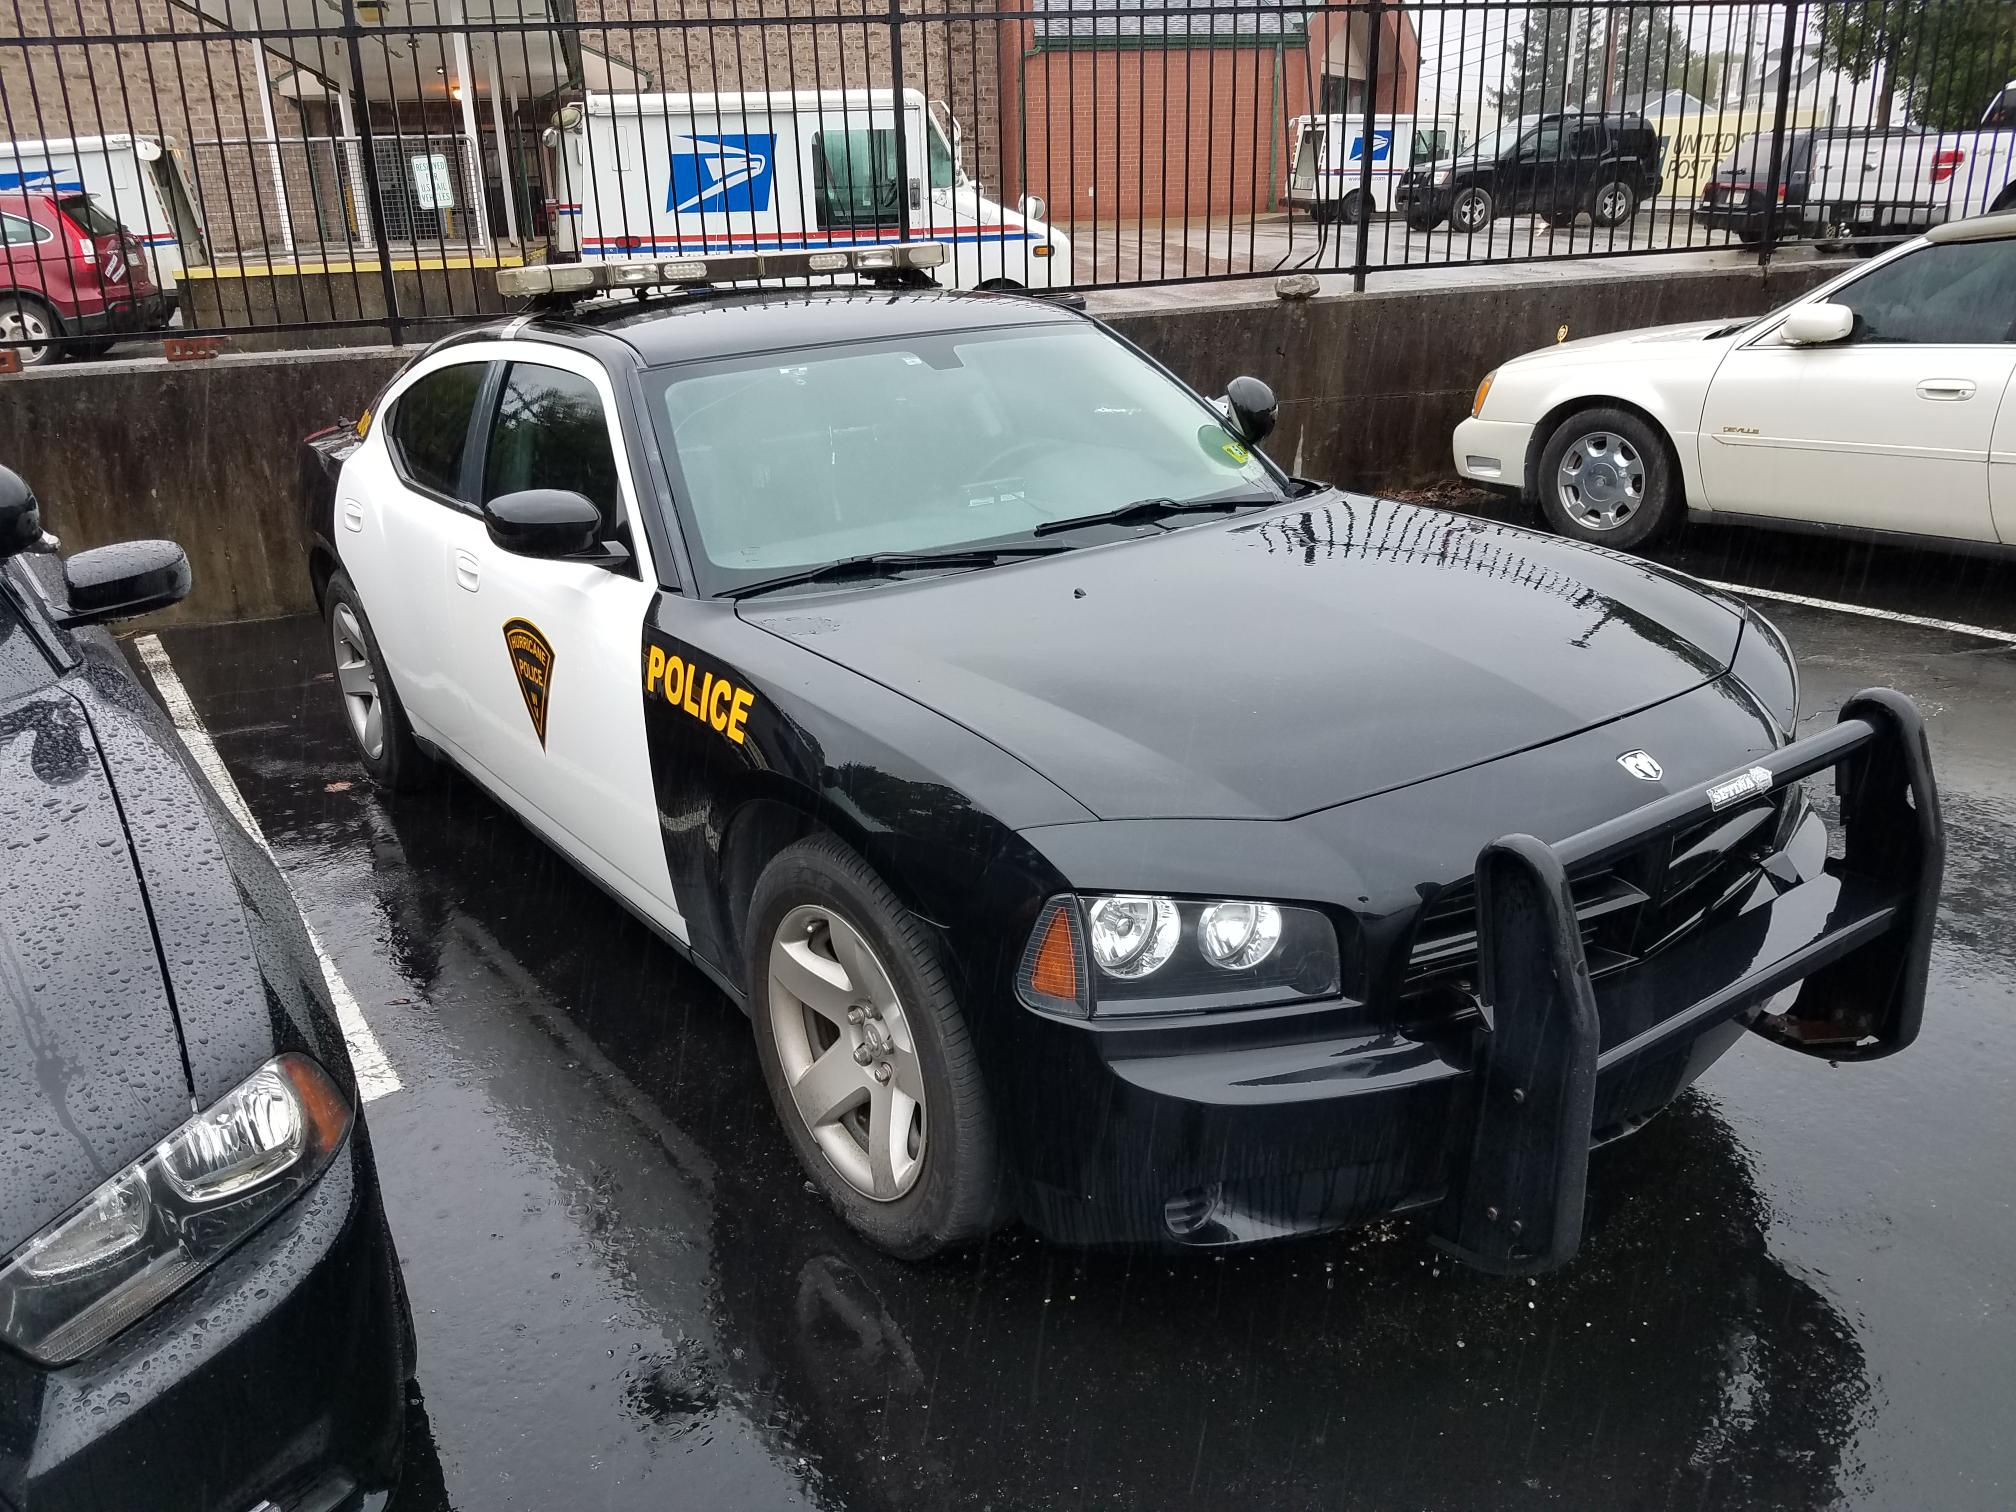 Police Car For Sale >> Police Vehicles For Sale City Of Hurricane West Virginia